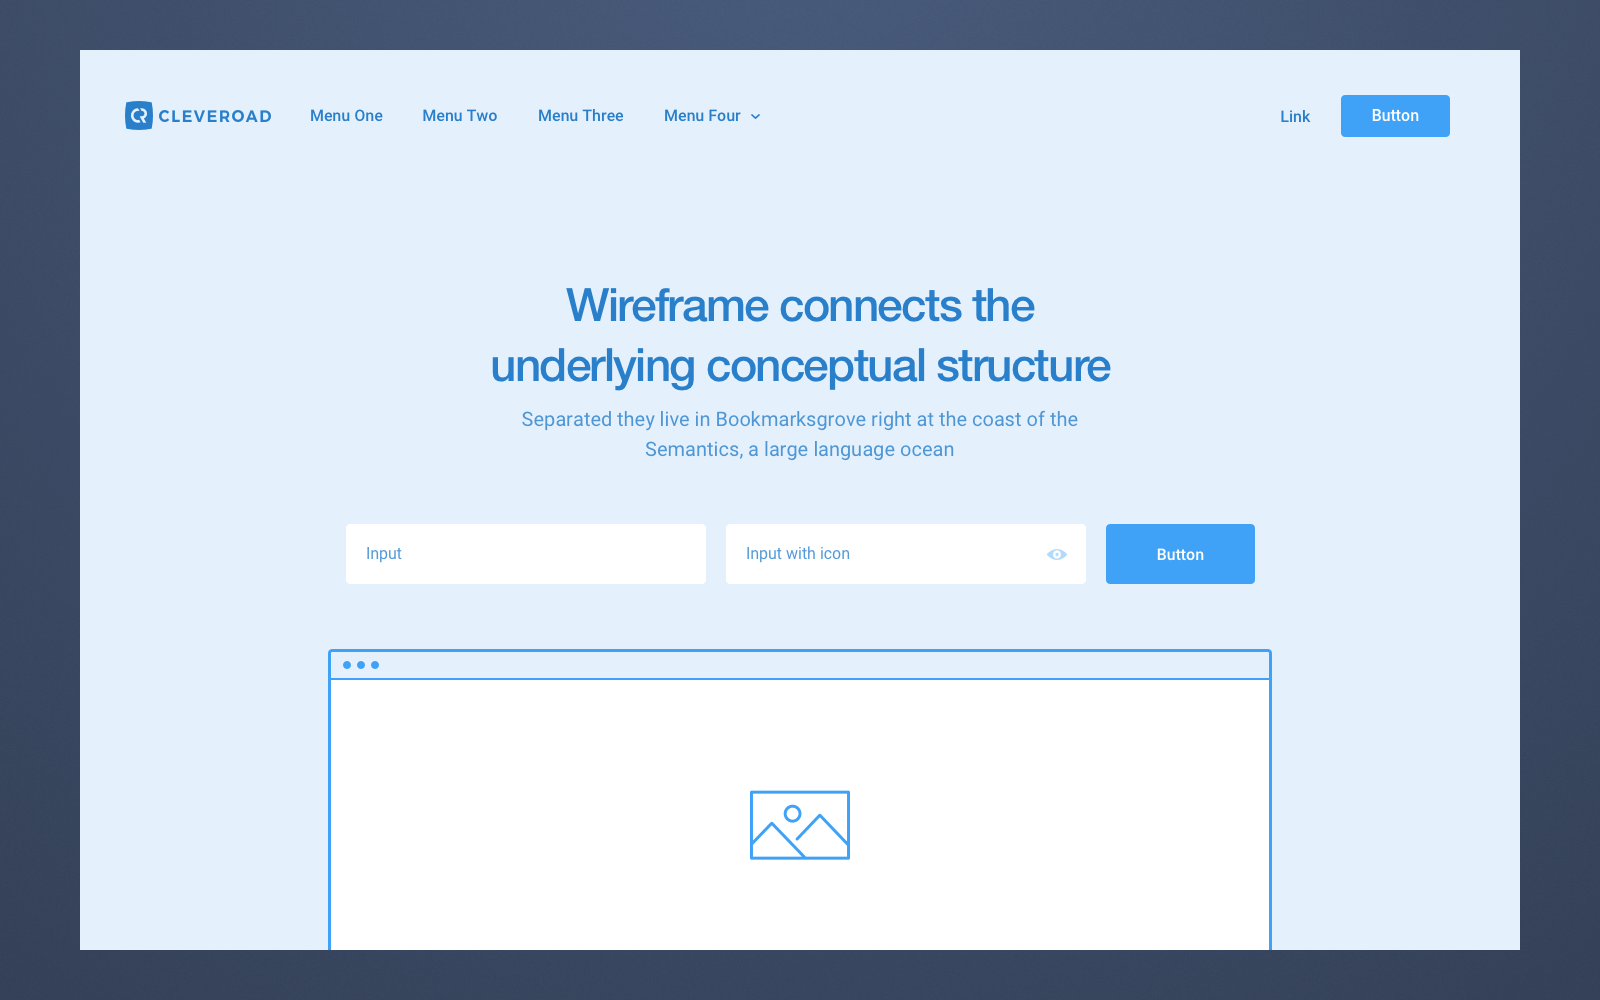 An example of a website wireframe